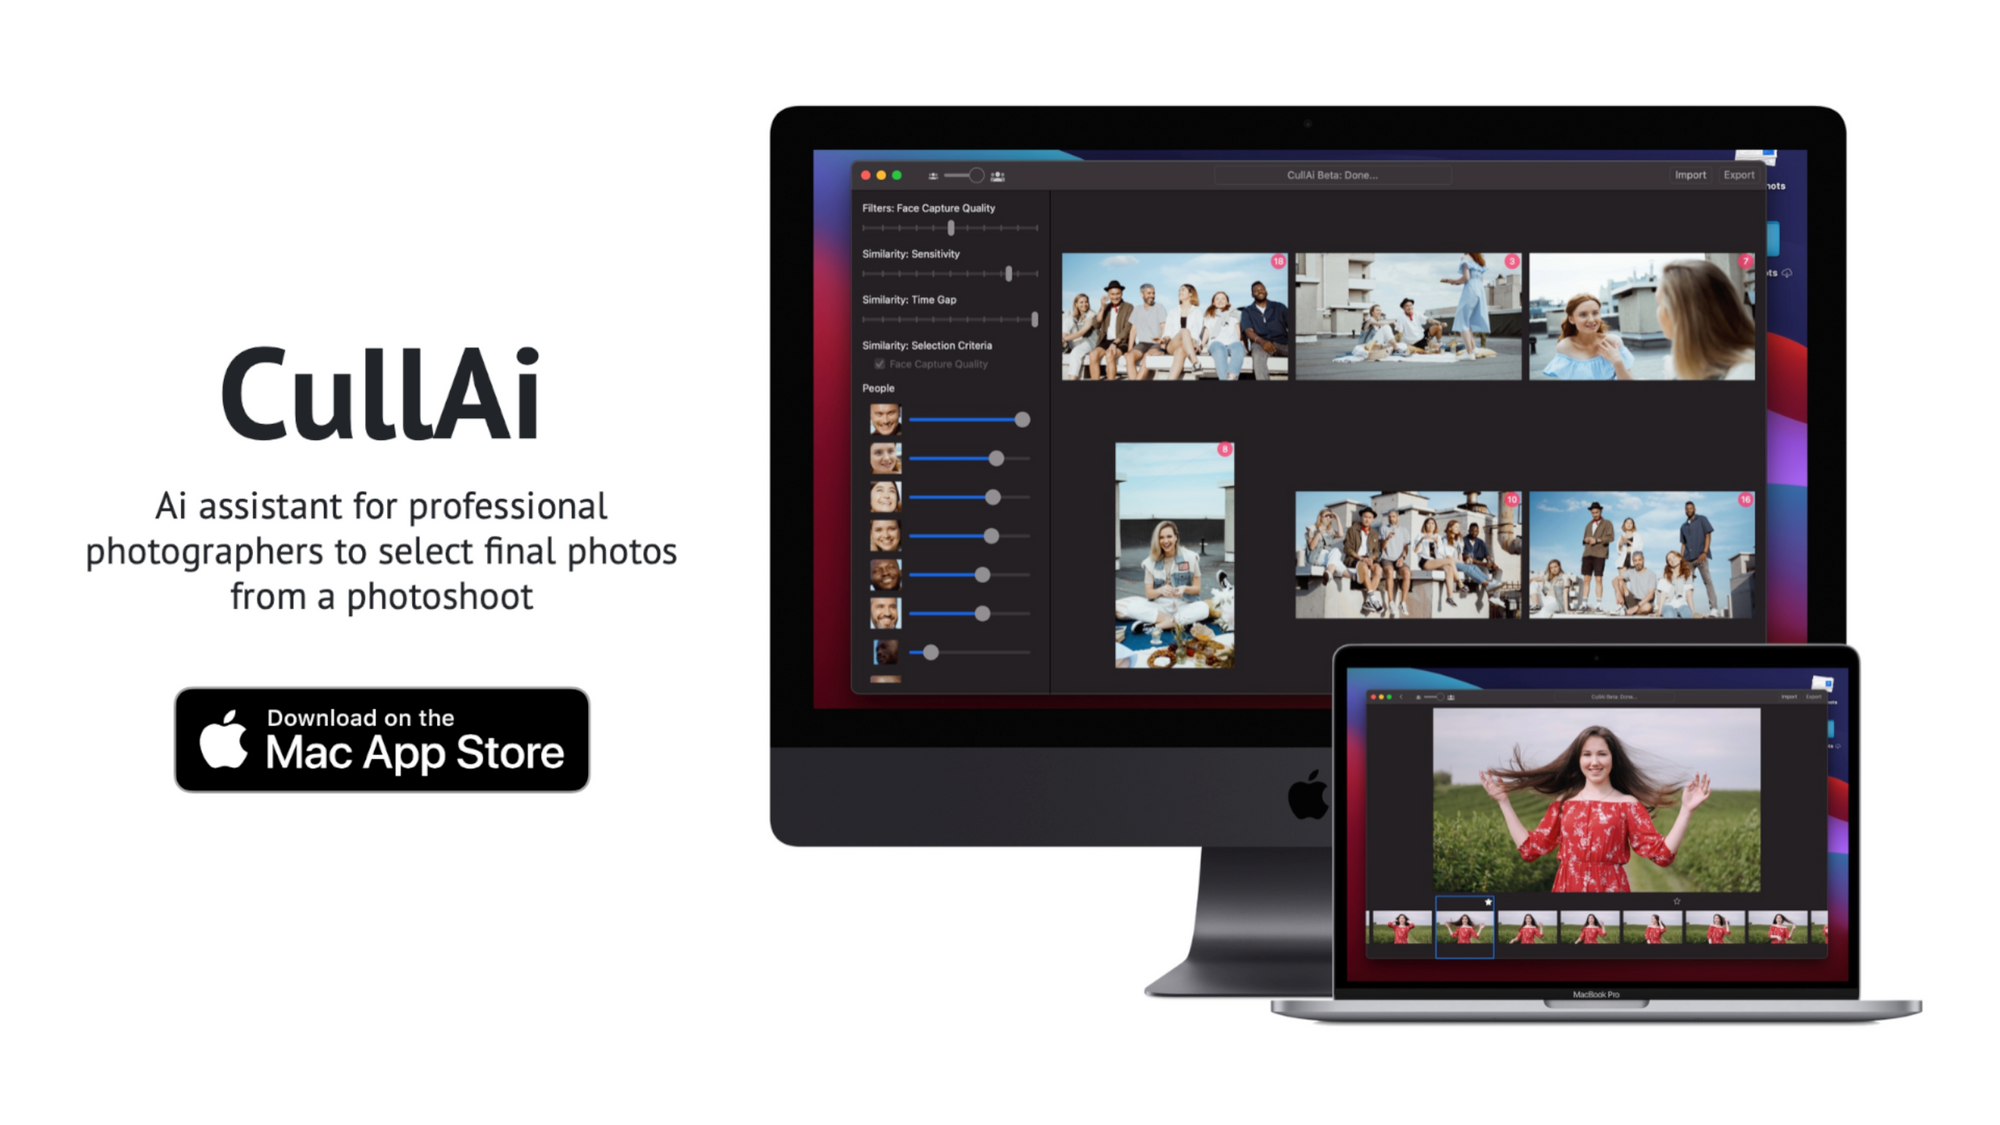 Introducing CullAi - Ai assistant for professional photographers to select final photos from a photoshoot